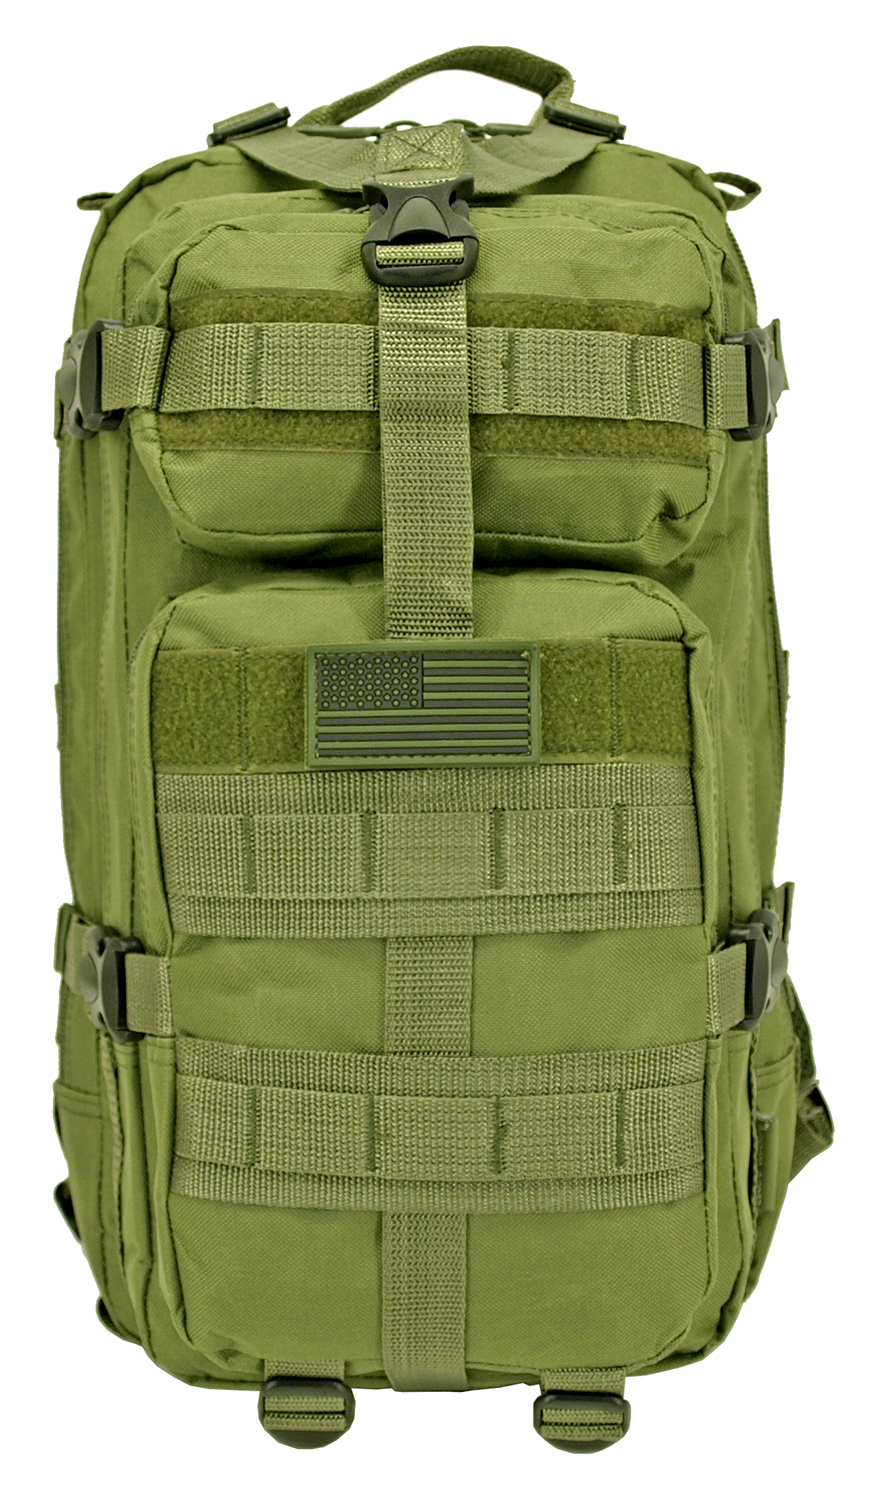 Sortie Mission Pack Backpack - Olive Green